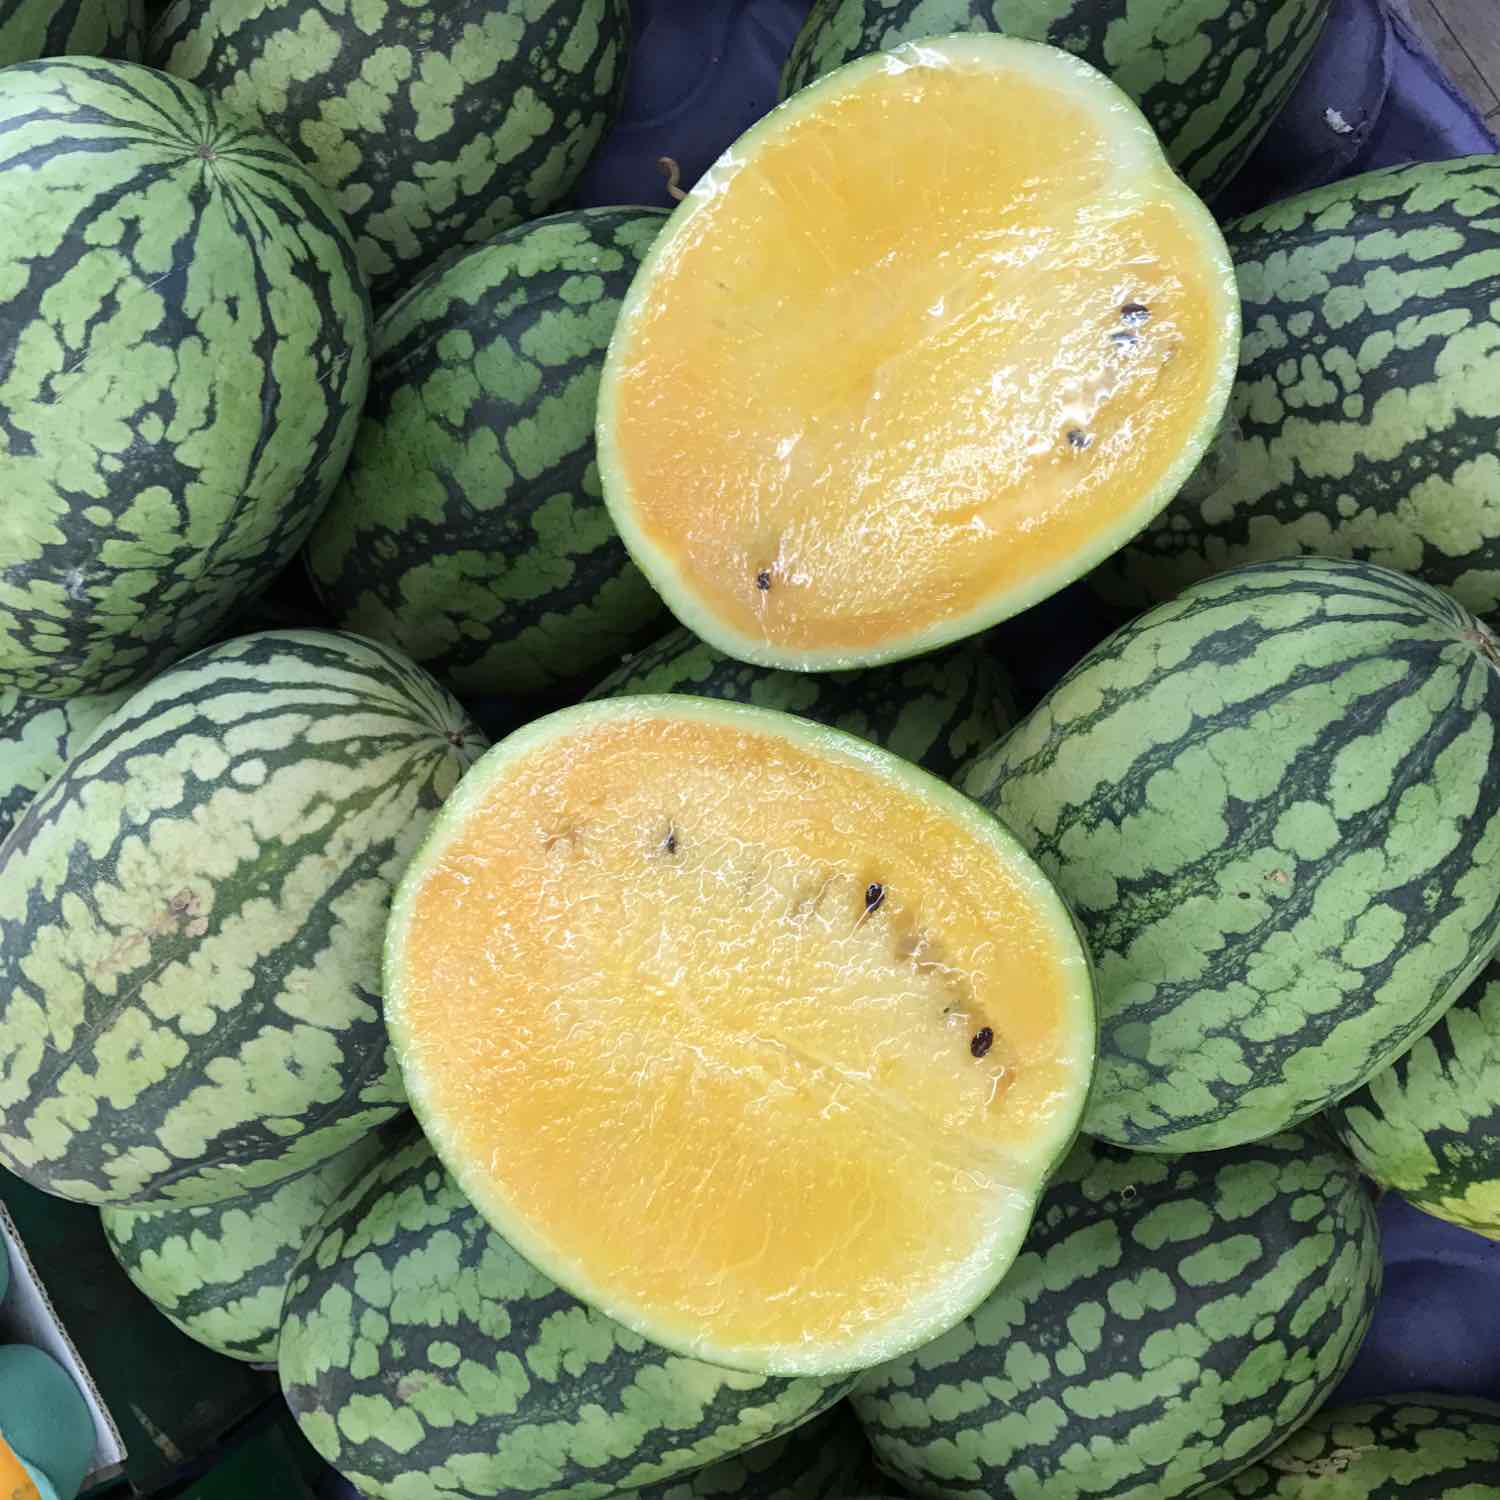 taiwanese yellow watermelon